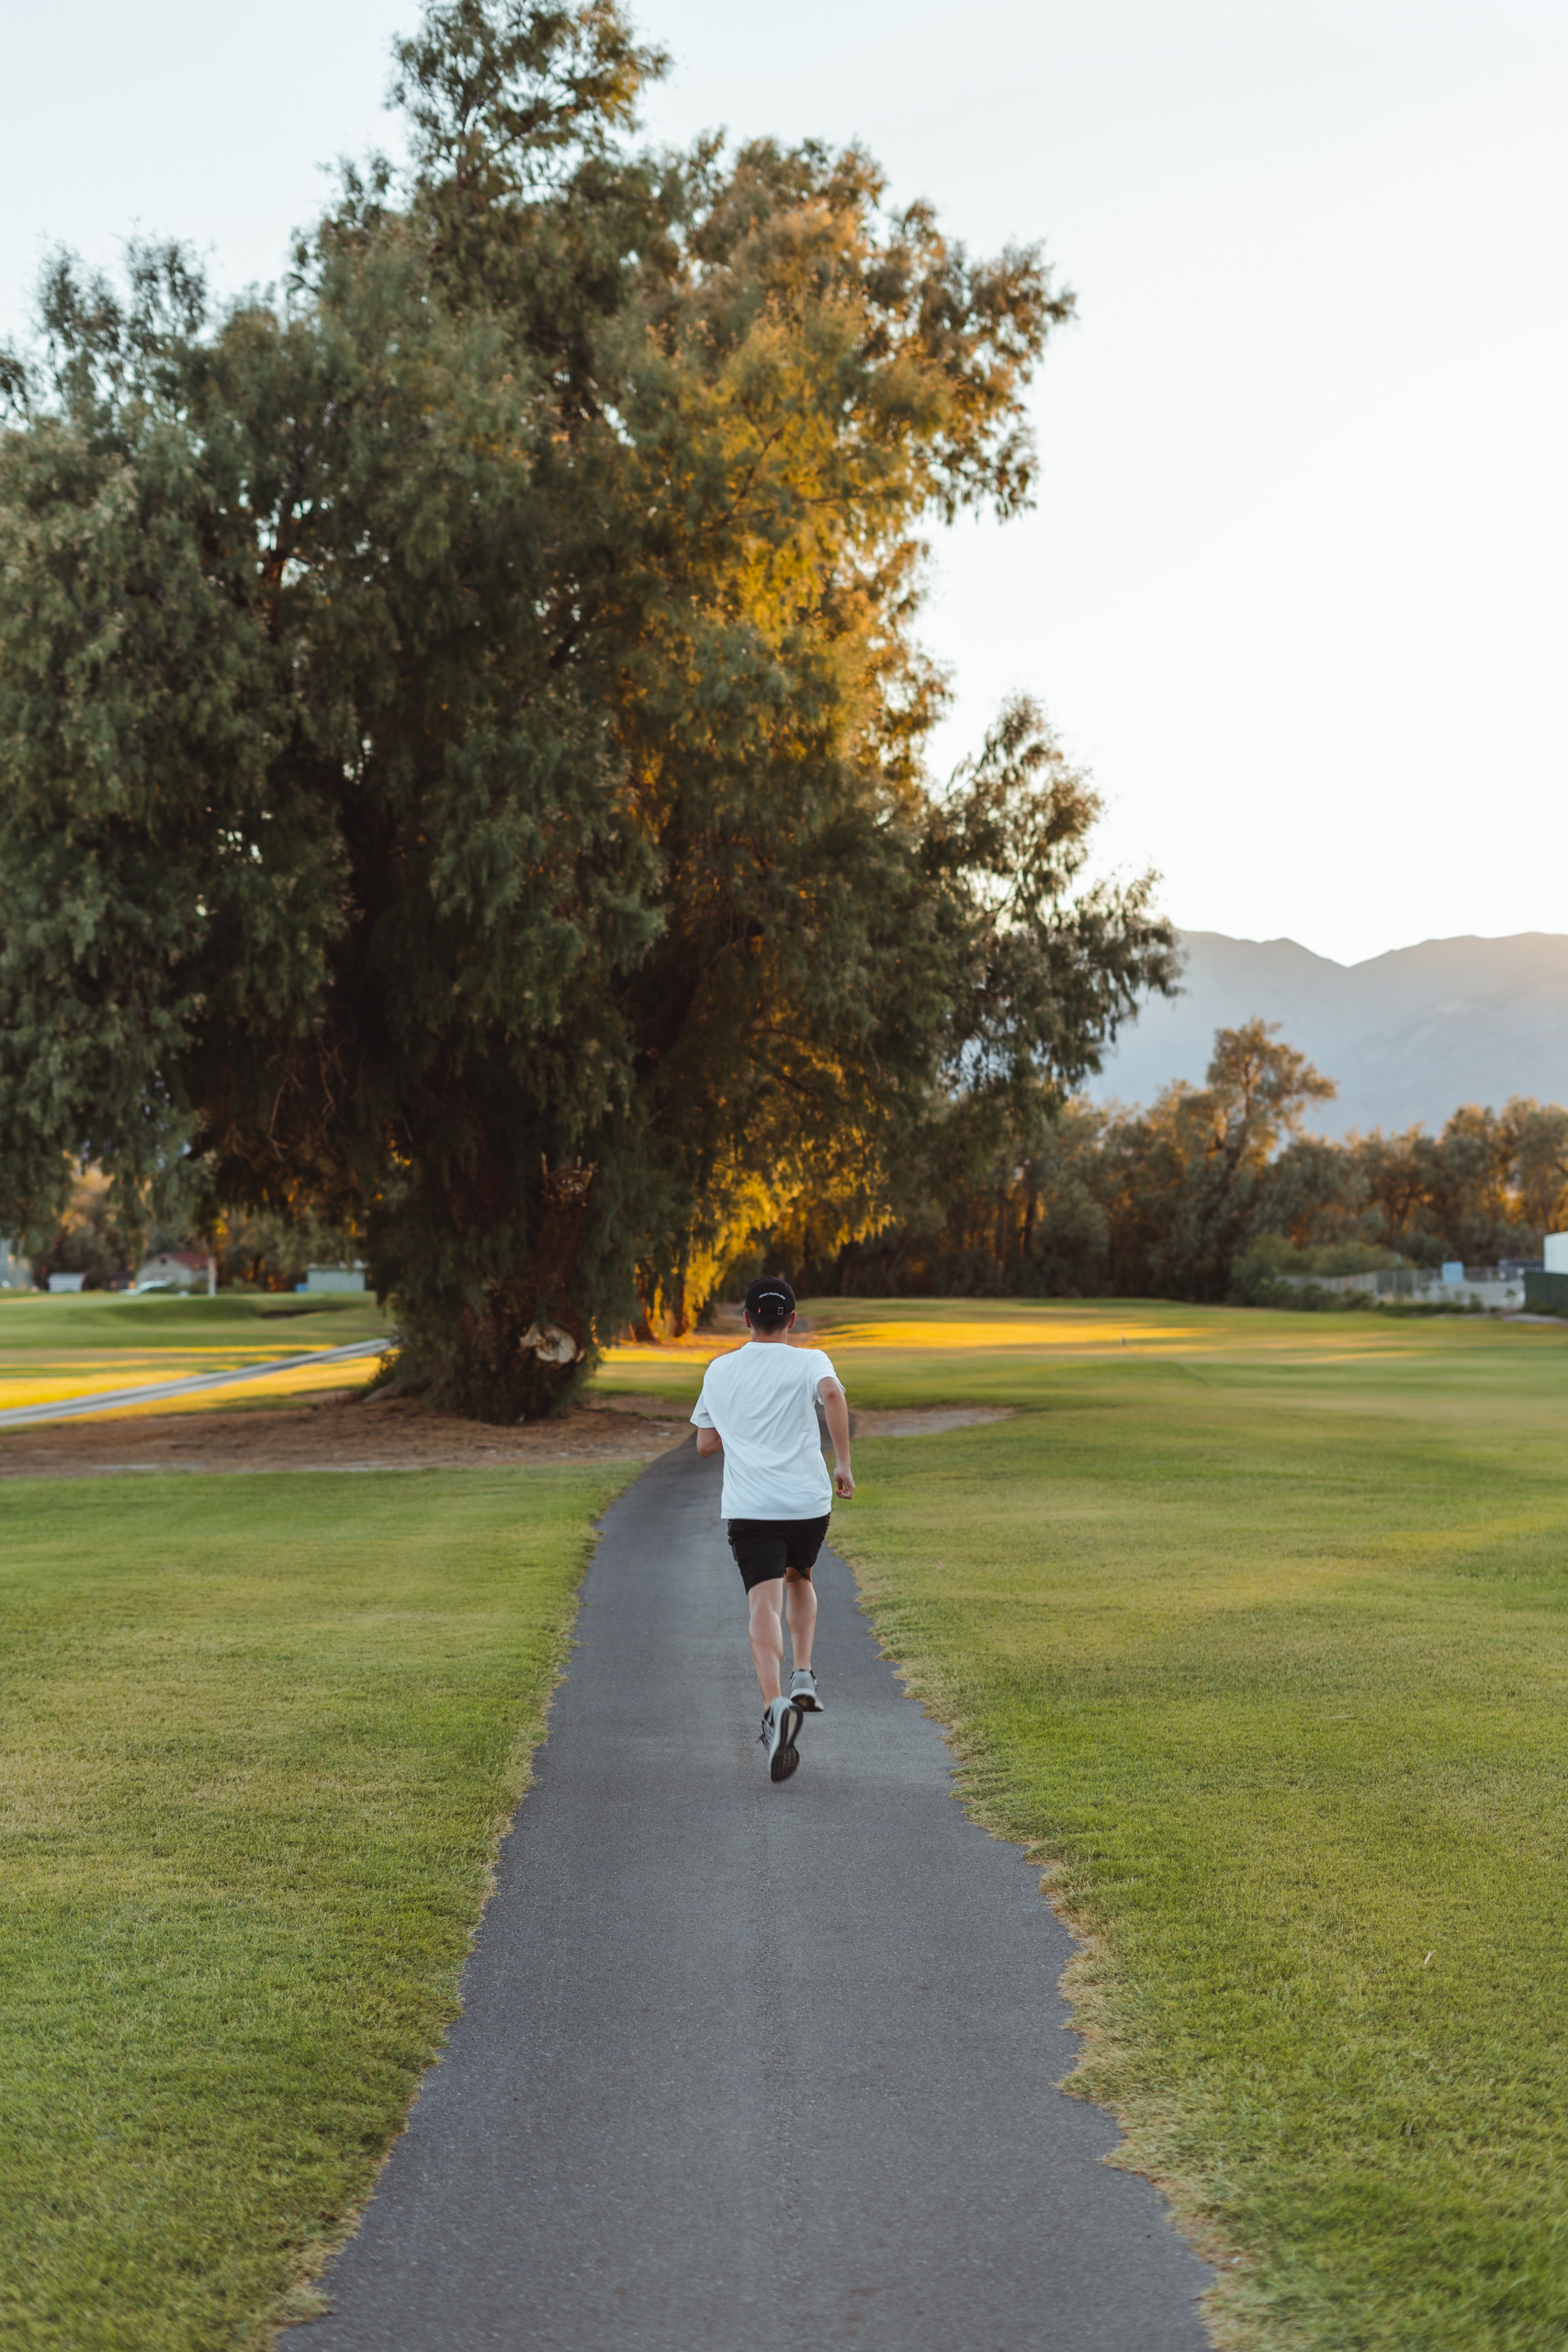 parks for health and wellbeing